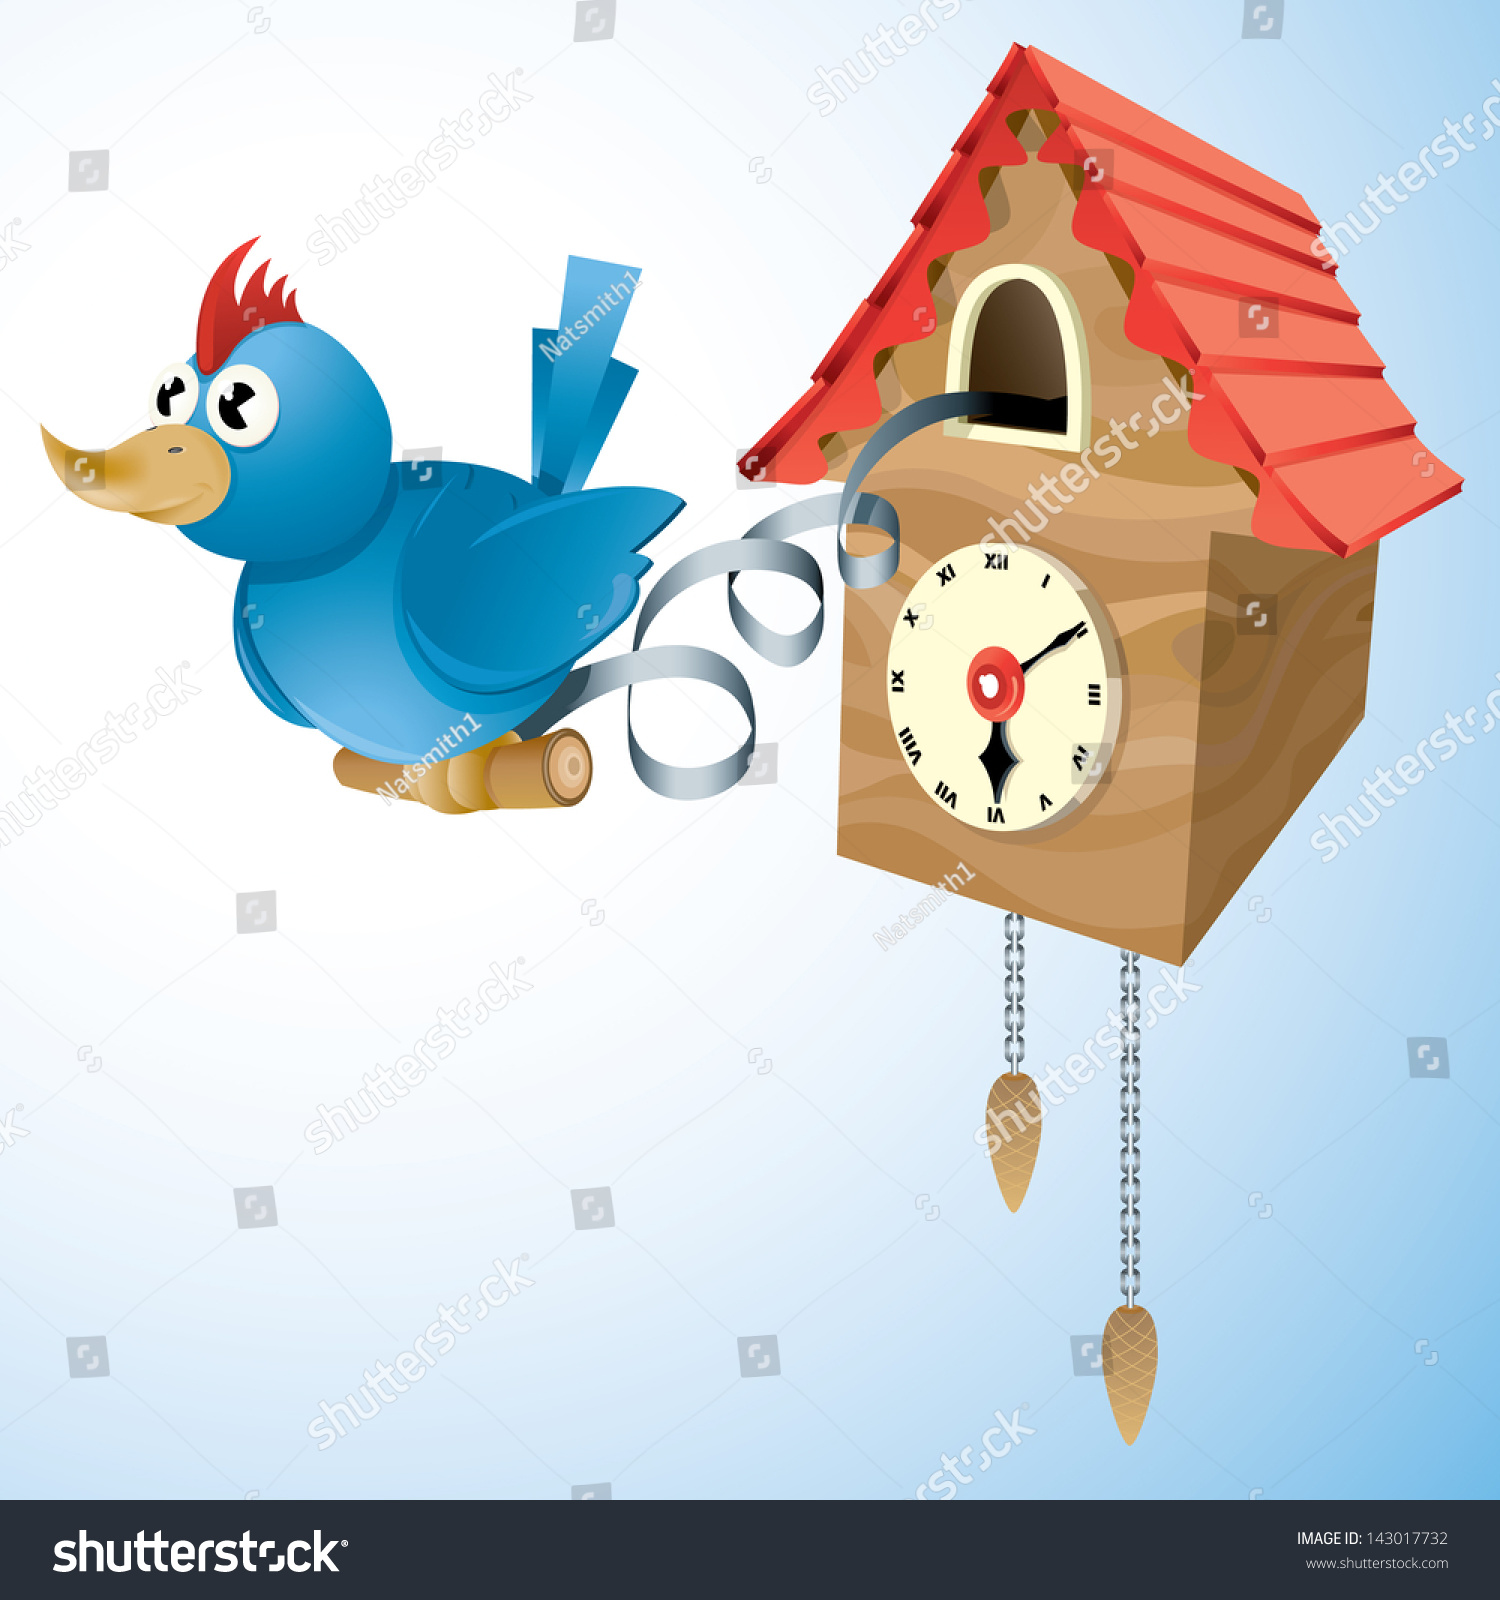 1 0 9 together with Stock Vector Vector Drawing Of A Cuckoo Clock Cuckoo Clock Easy To Edit Vector Drawing Easy To Edit Layers And as well Nixie Clock Numerical Counter Videowall also Clock Wallpaper For Windows 10 further 2913. on alarm clock wallpaper